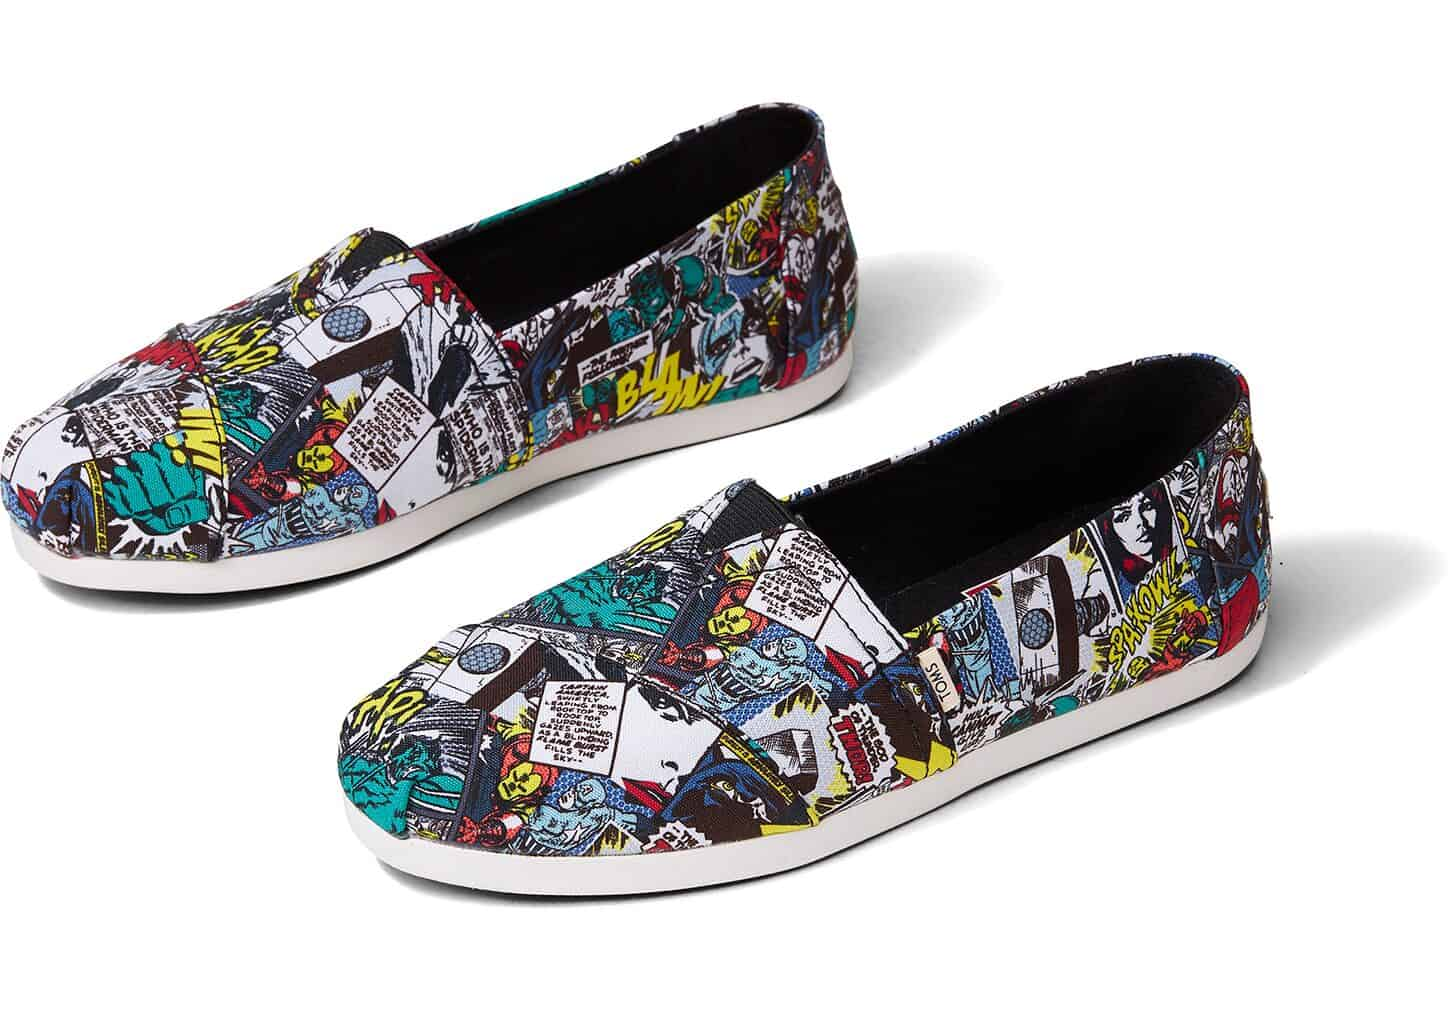 Marvel at These New Superhero Disney TOMS Shoes 11